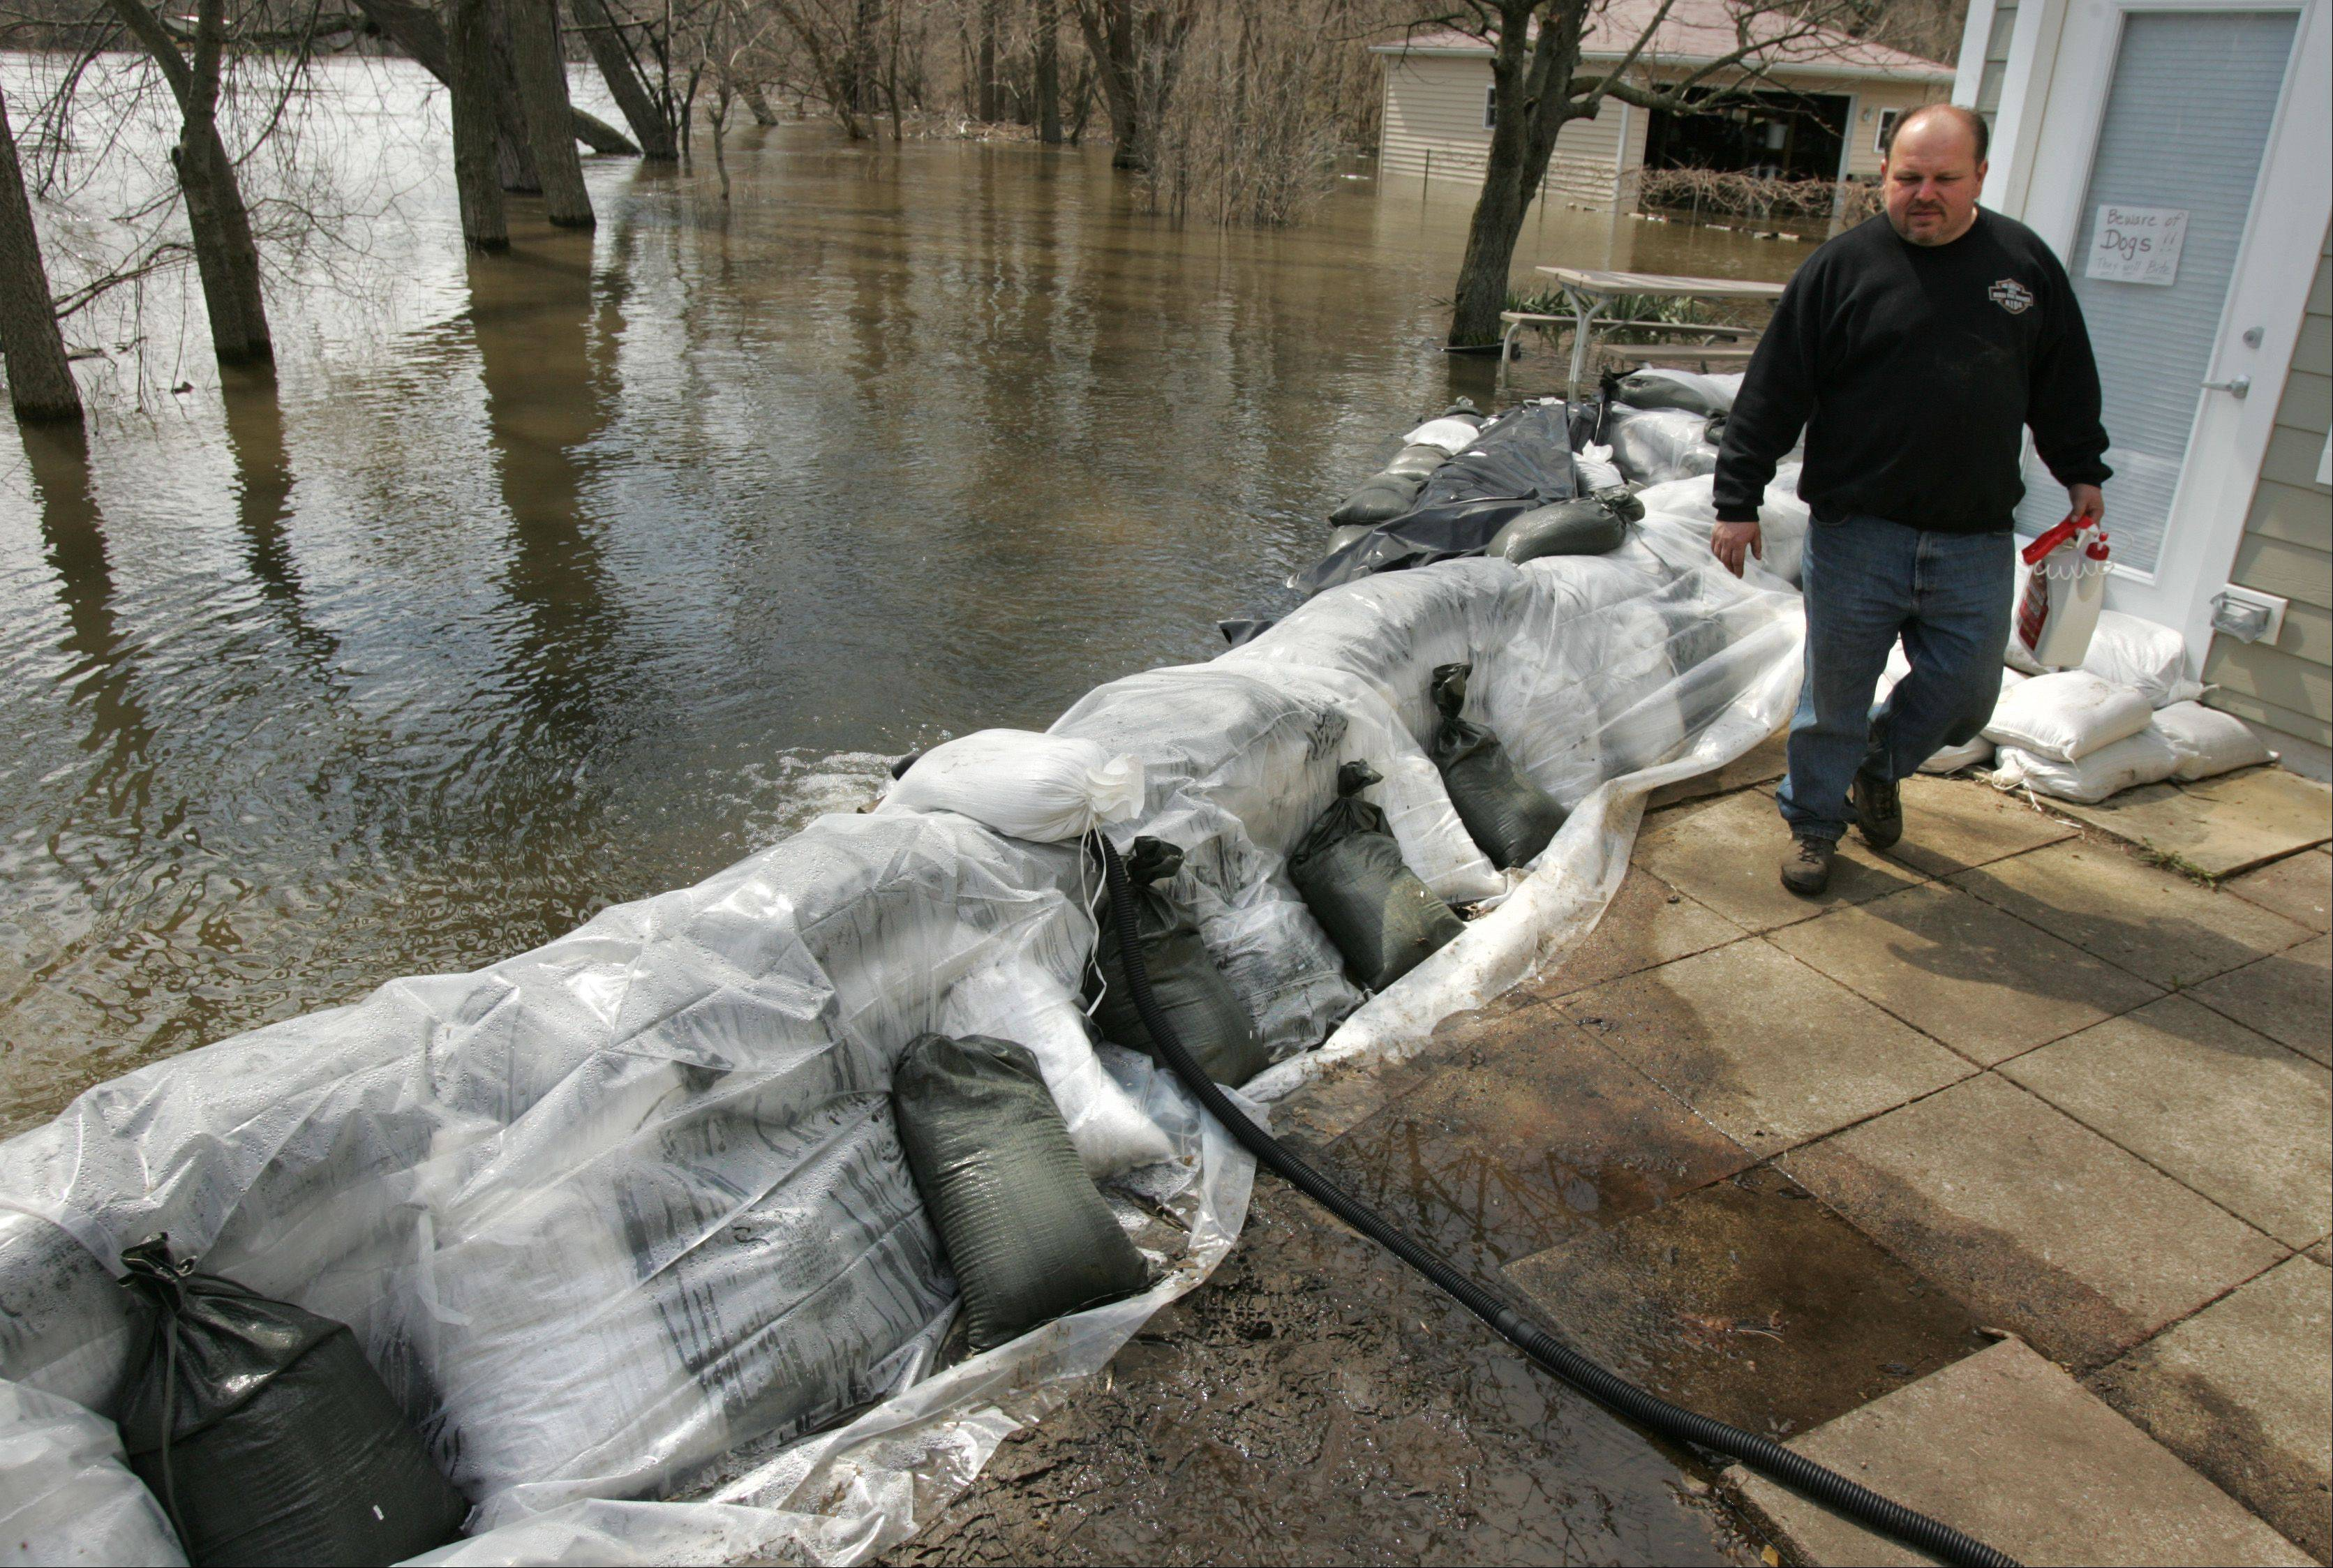 Algonquin resident Tony Angarola inspects the sand bag wall that's currently holding back about a foot of water from the Fox River Monday morning.